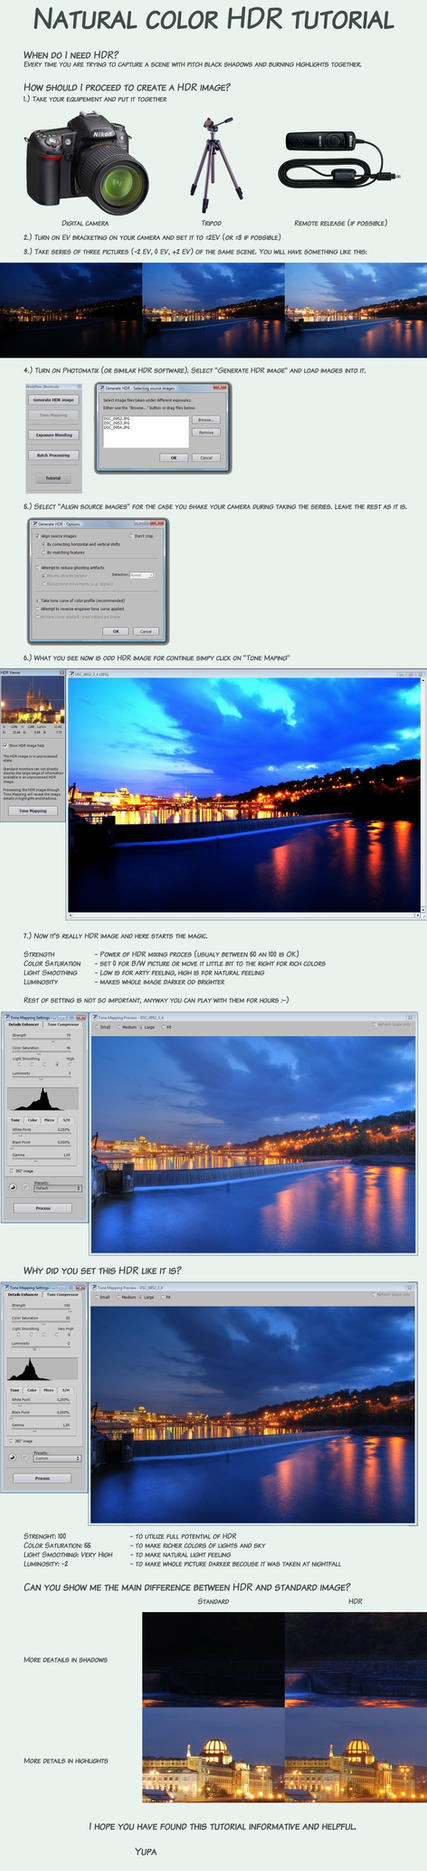 Natural color HDR tutorial by Yupa